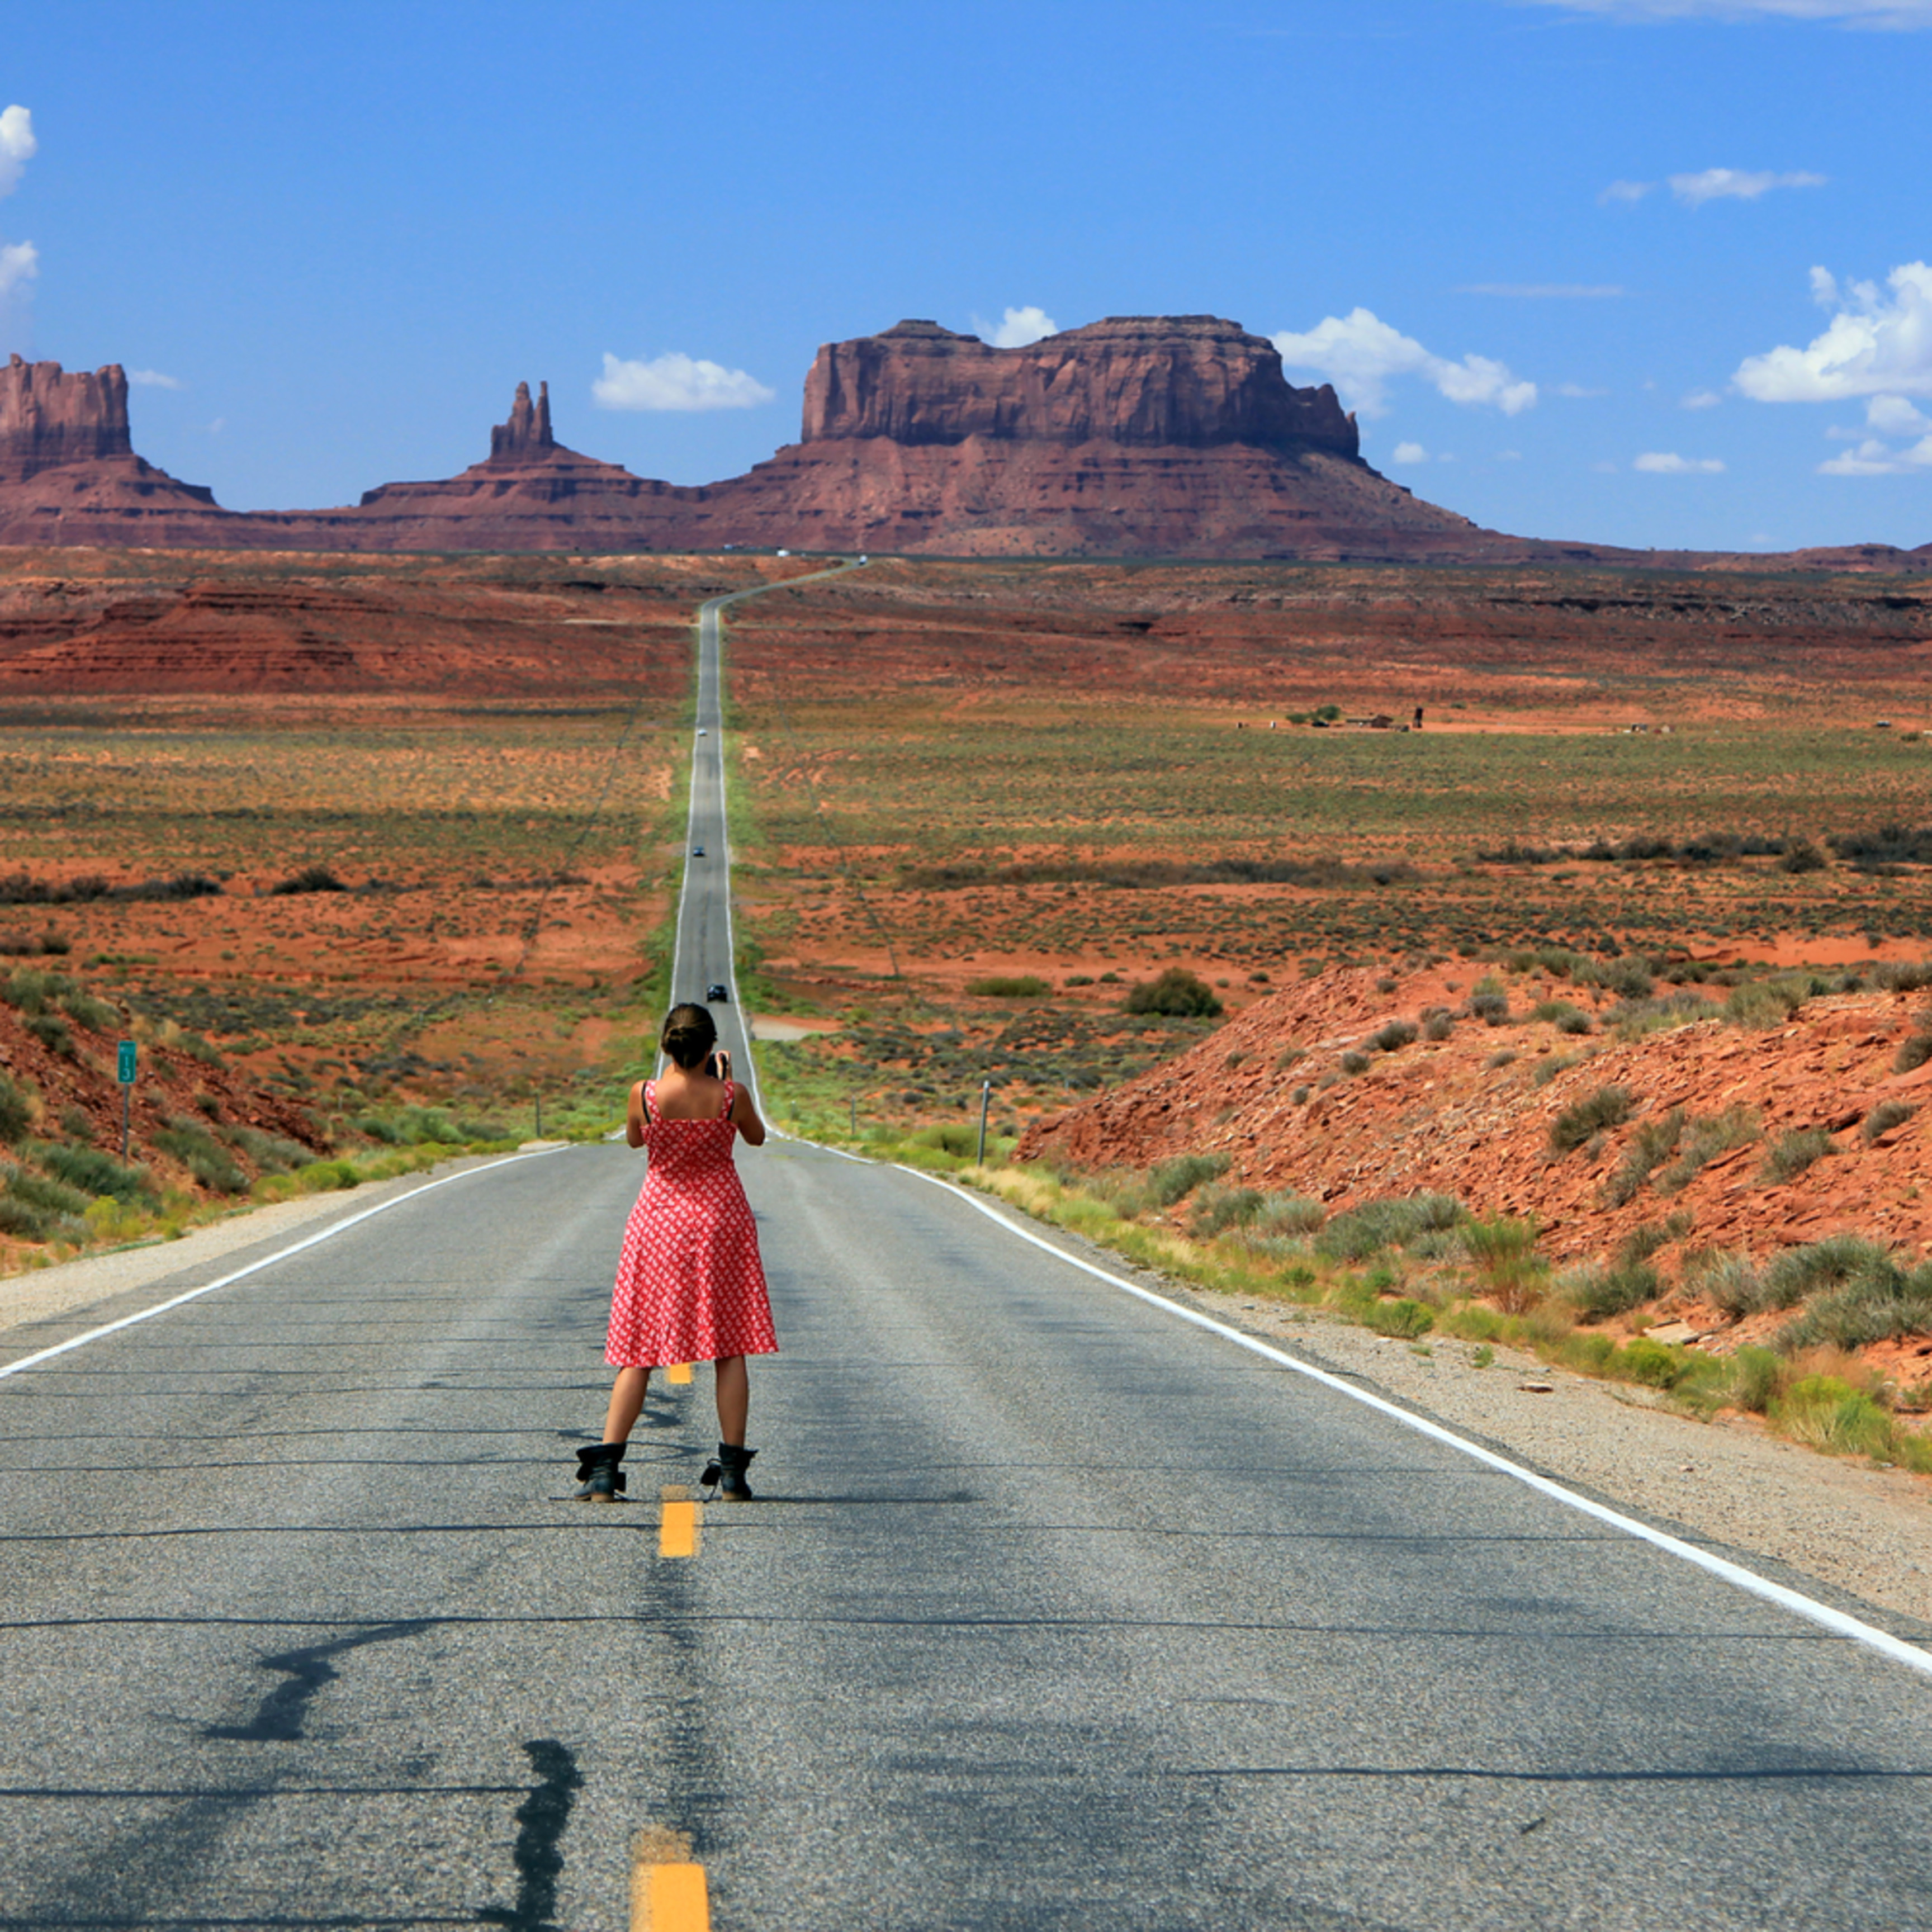 Down the road to monument valley nxmkpa